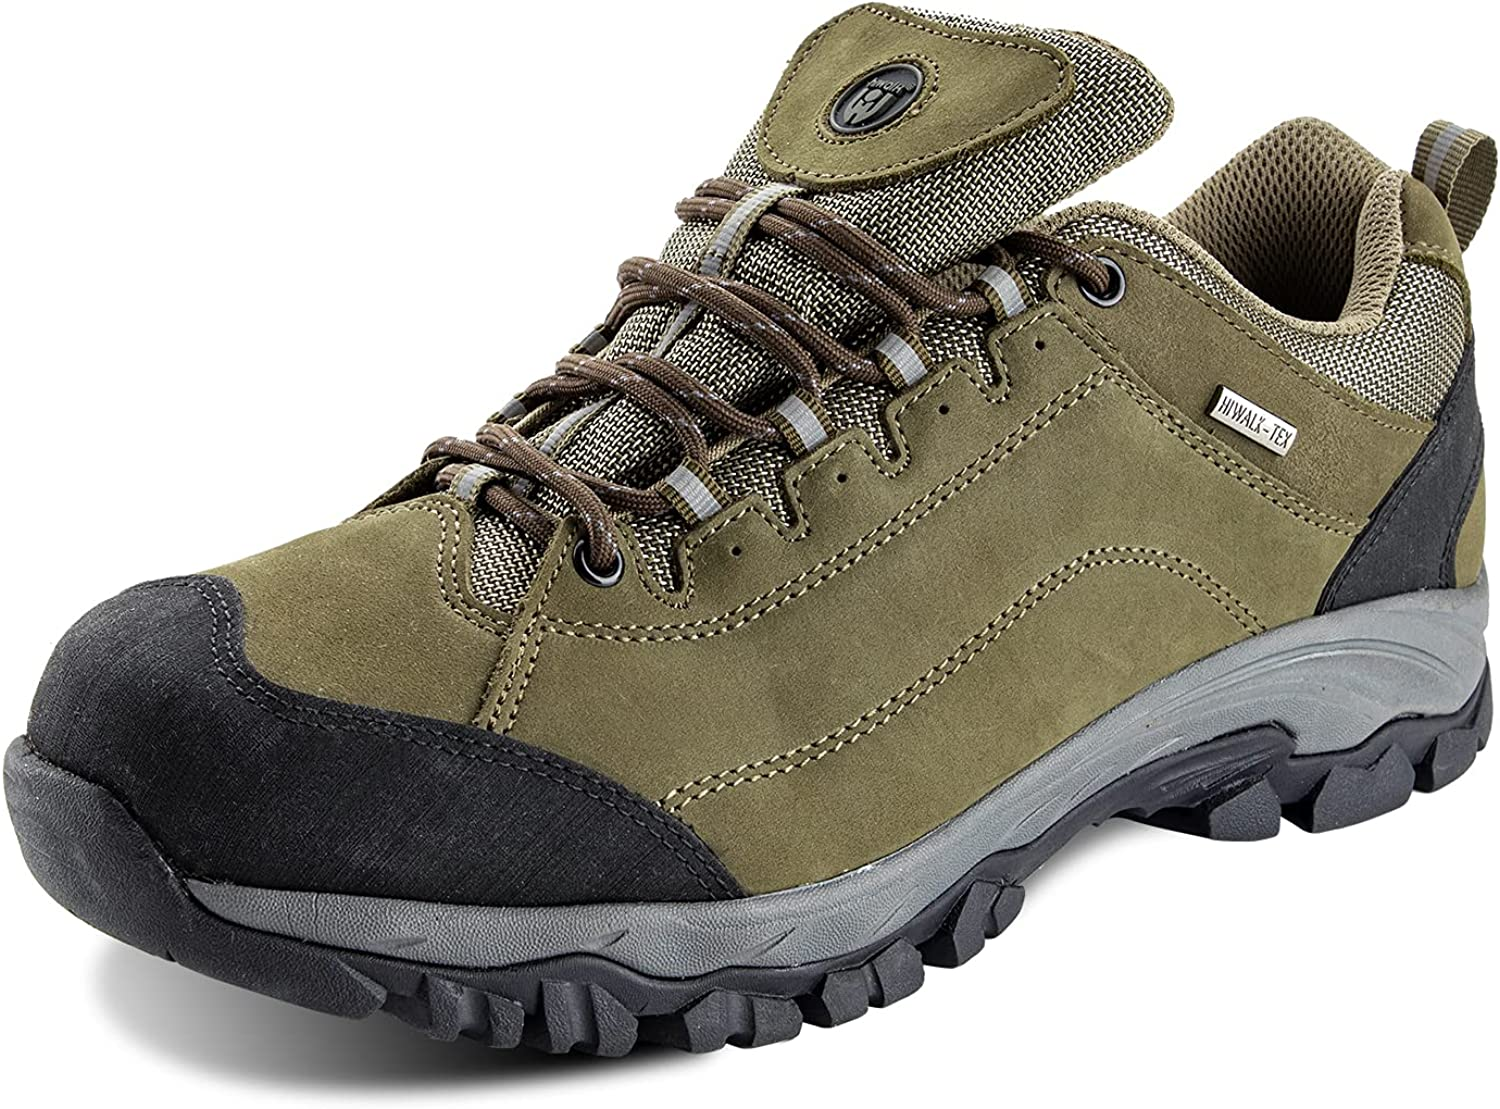 Outlet sale feature Night Cat lowest price Hiking Boots for Men Skid Waterproof Resist Breathable